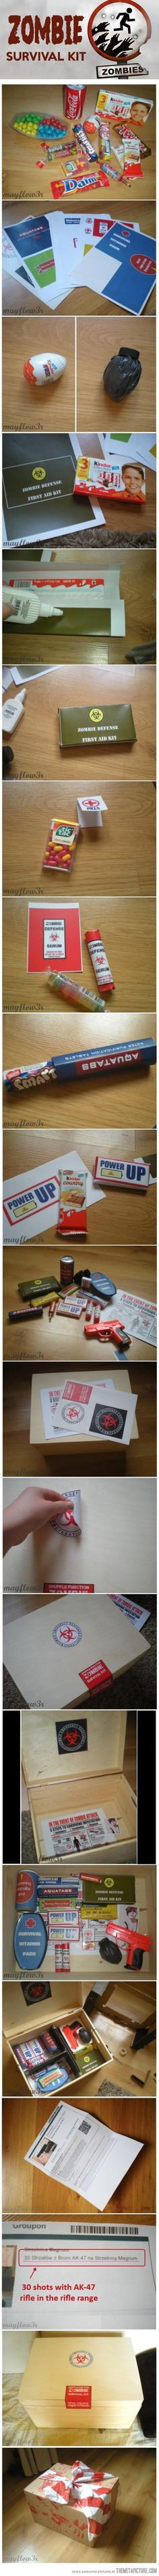 Amazing zombie survival kit gift box…